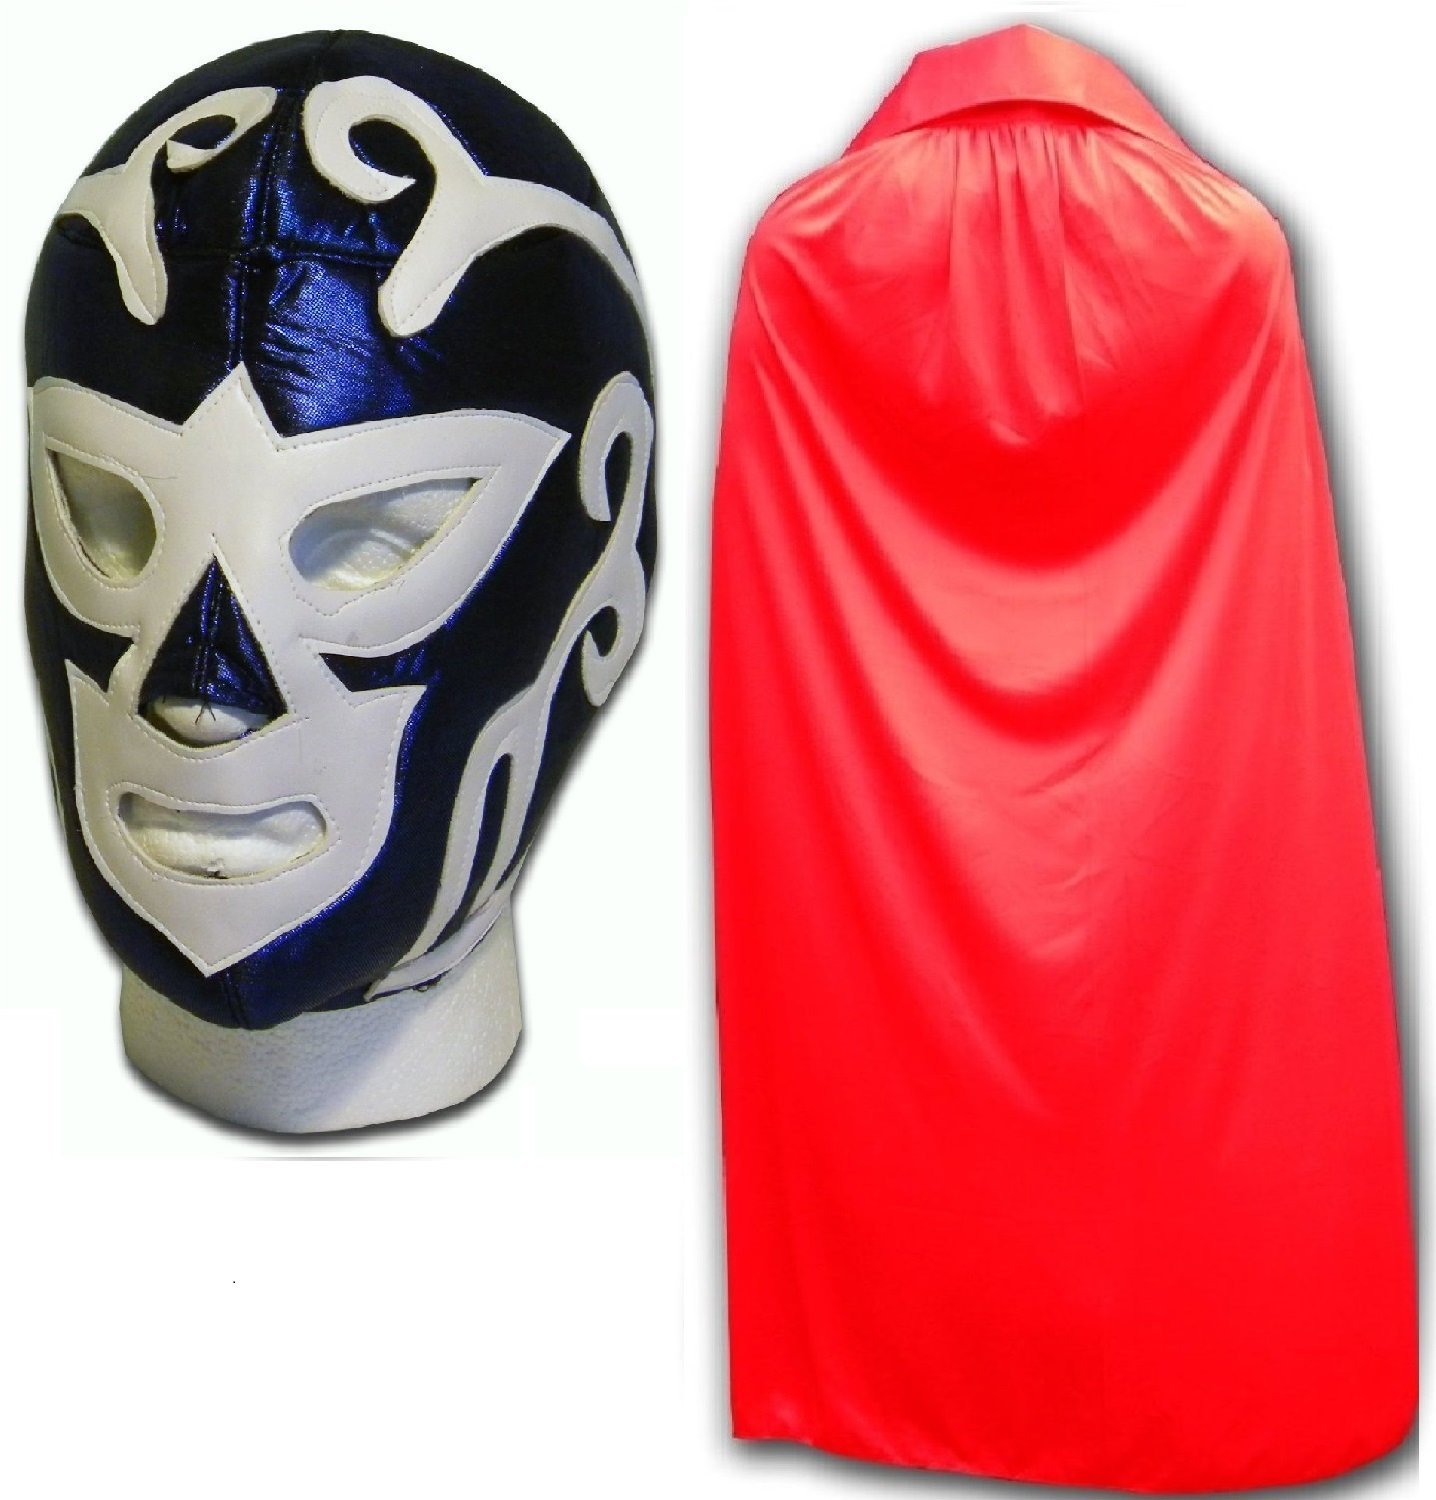 WRESTLING MASKS UK Men's Huracan Luchador Mexican Wrestling Mask With Cape One Size Blue/ Red by Wrestling